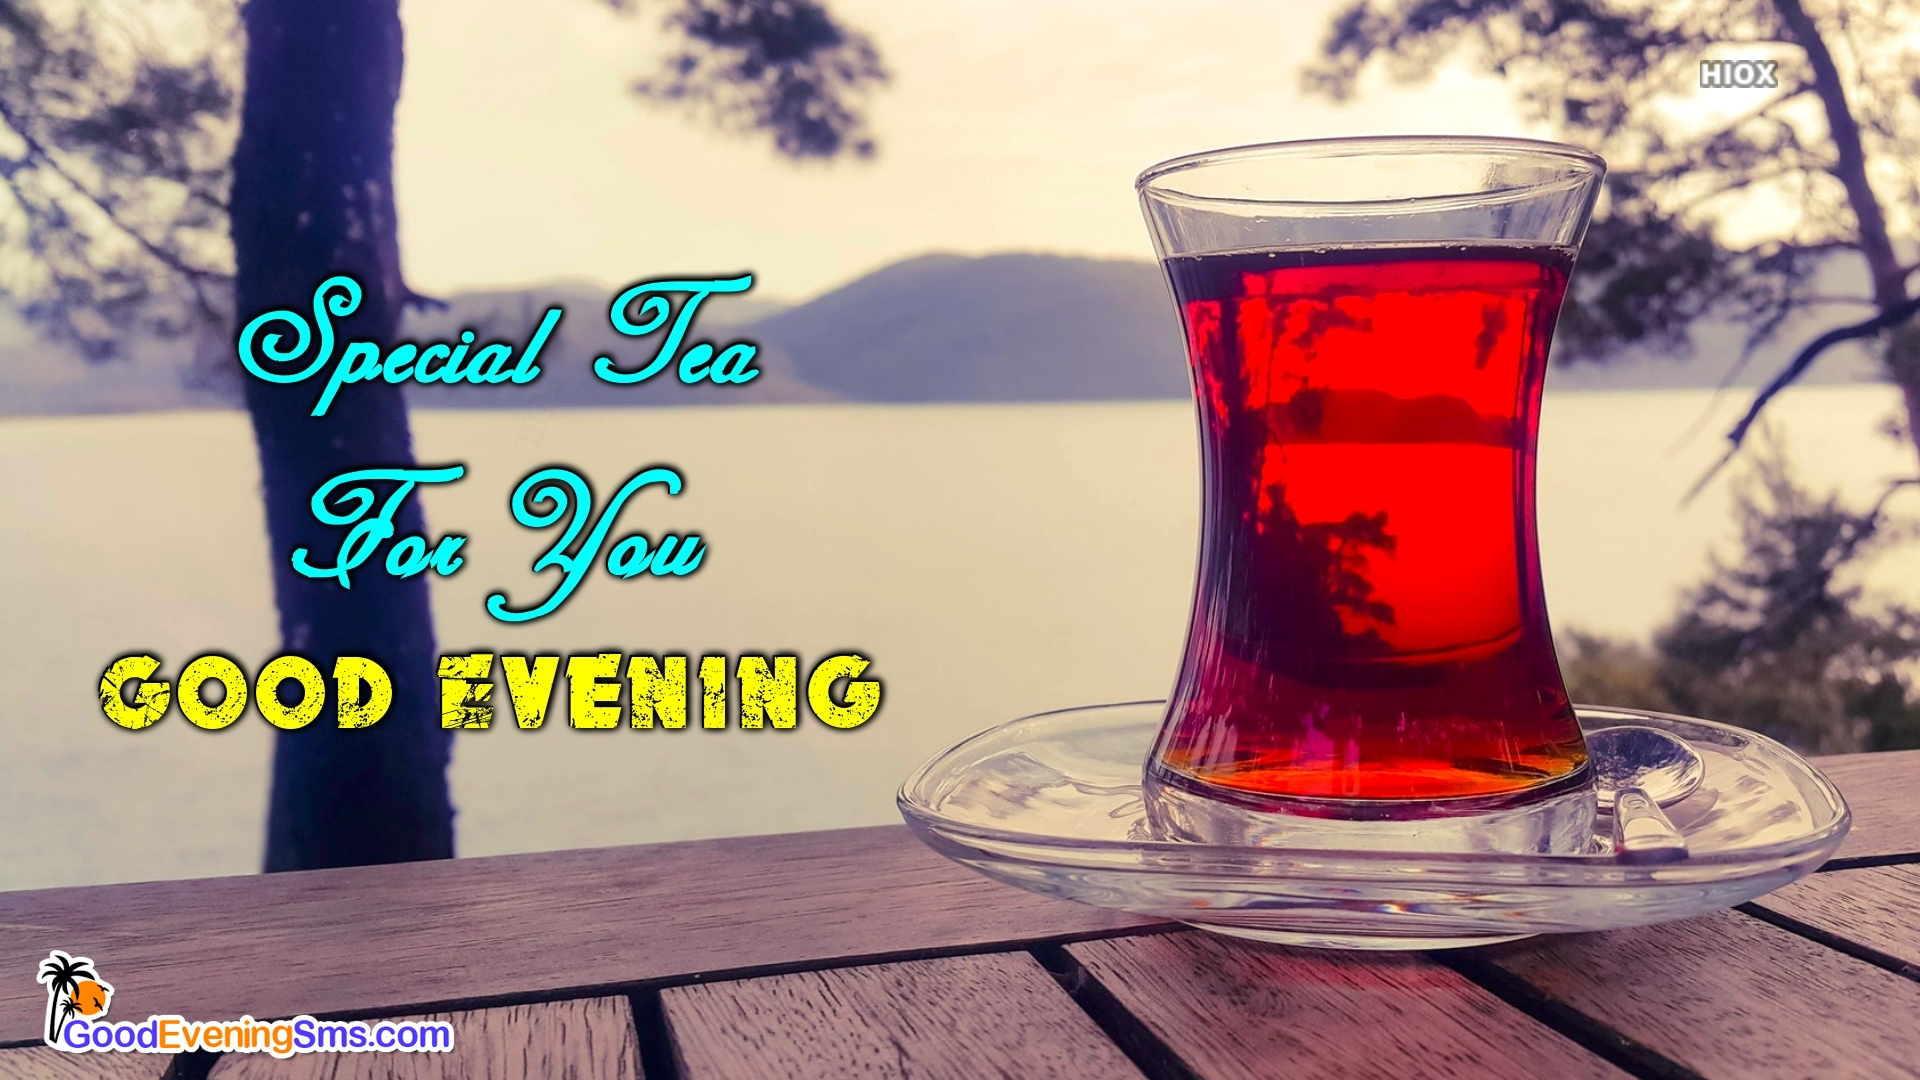 Good Evening Message With Tea